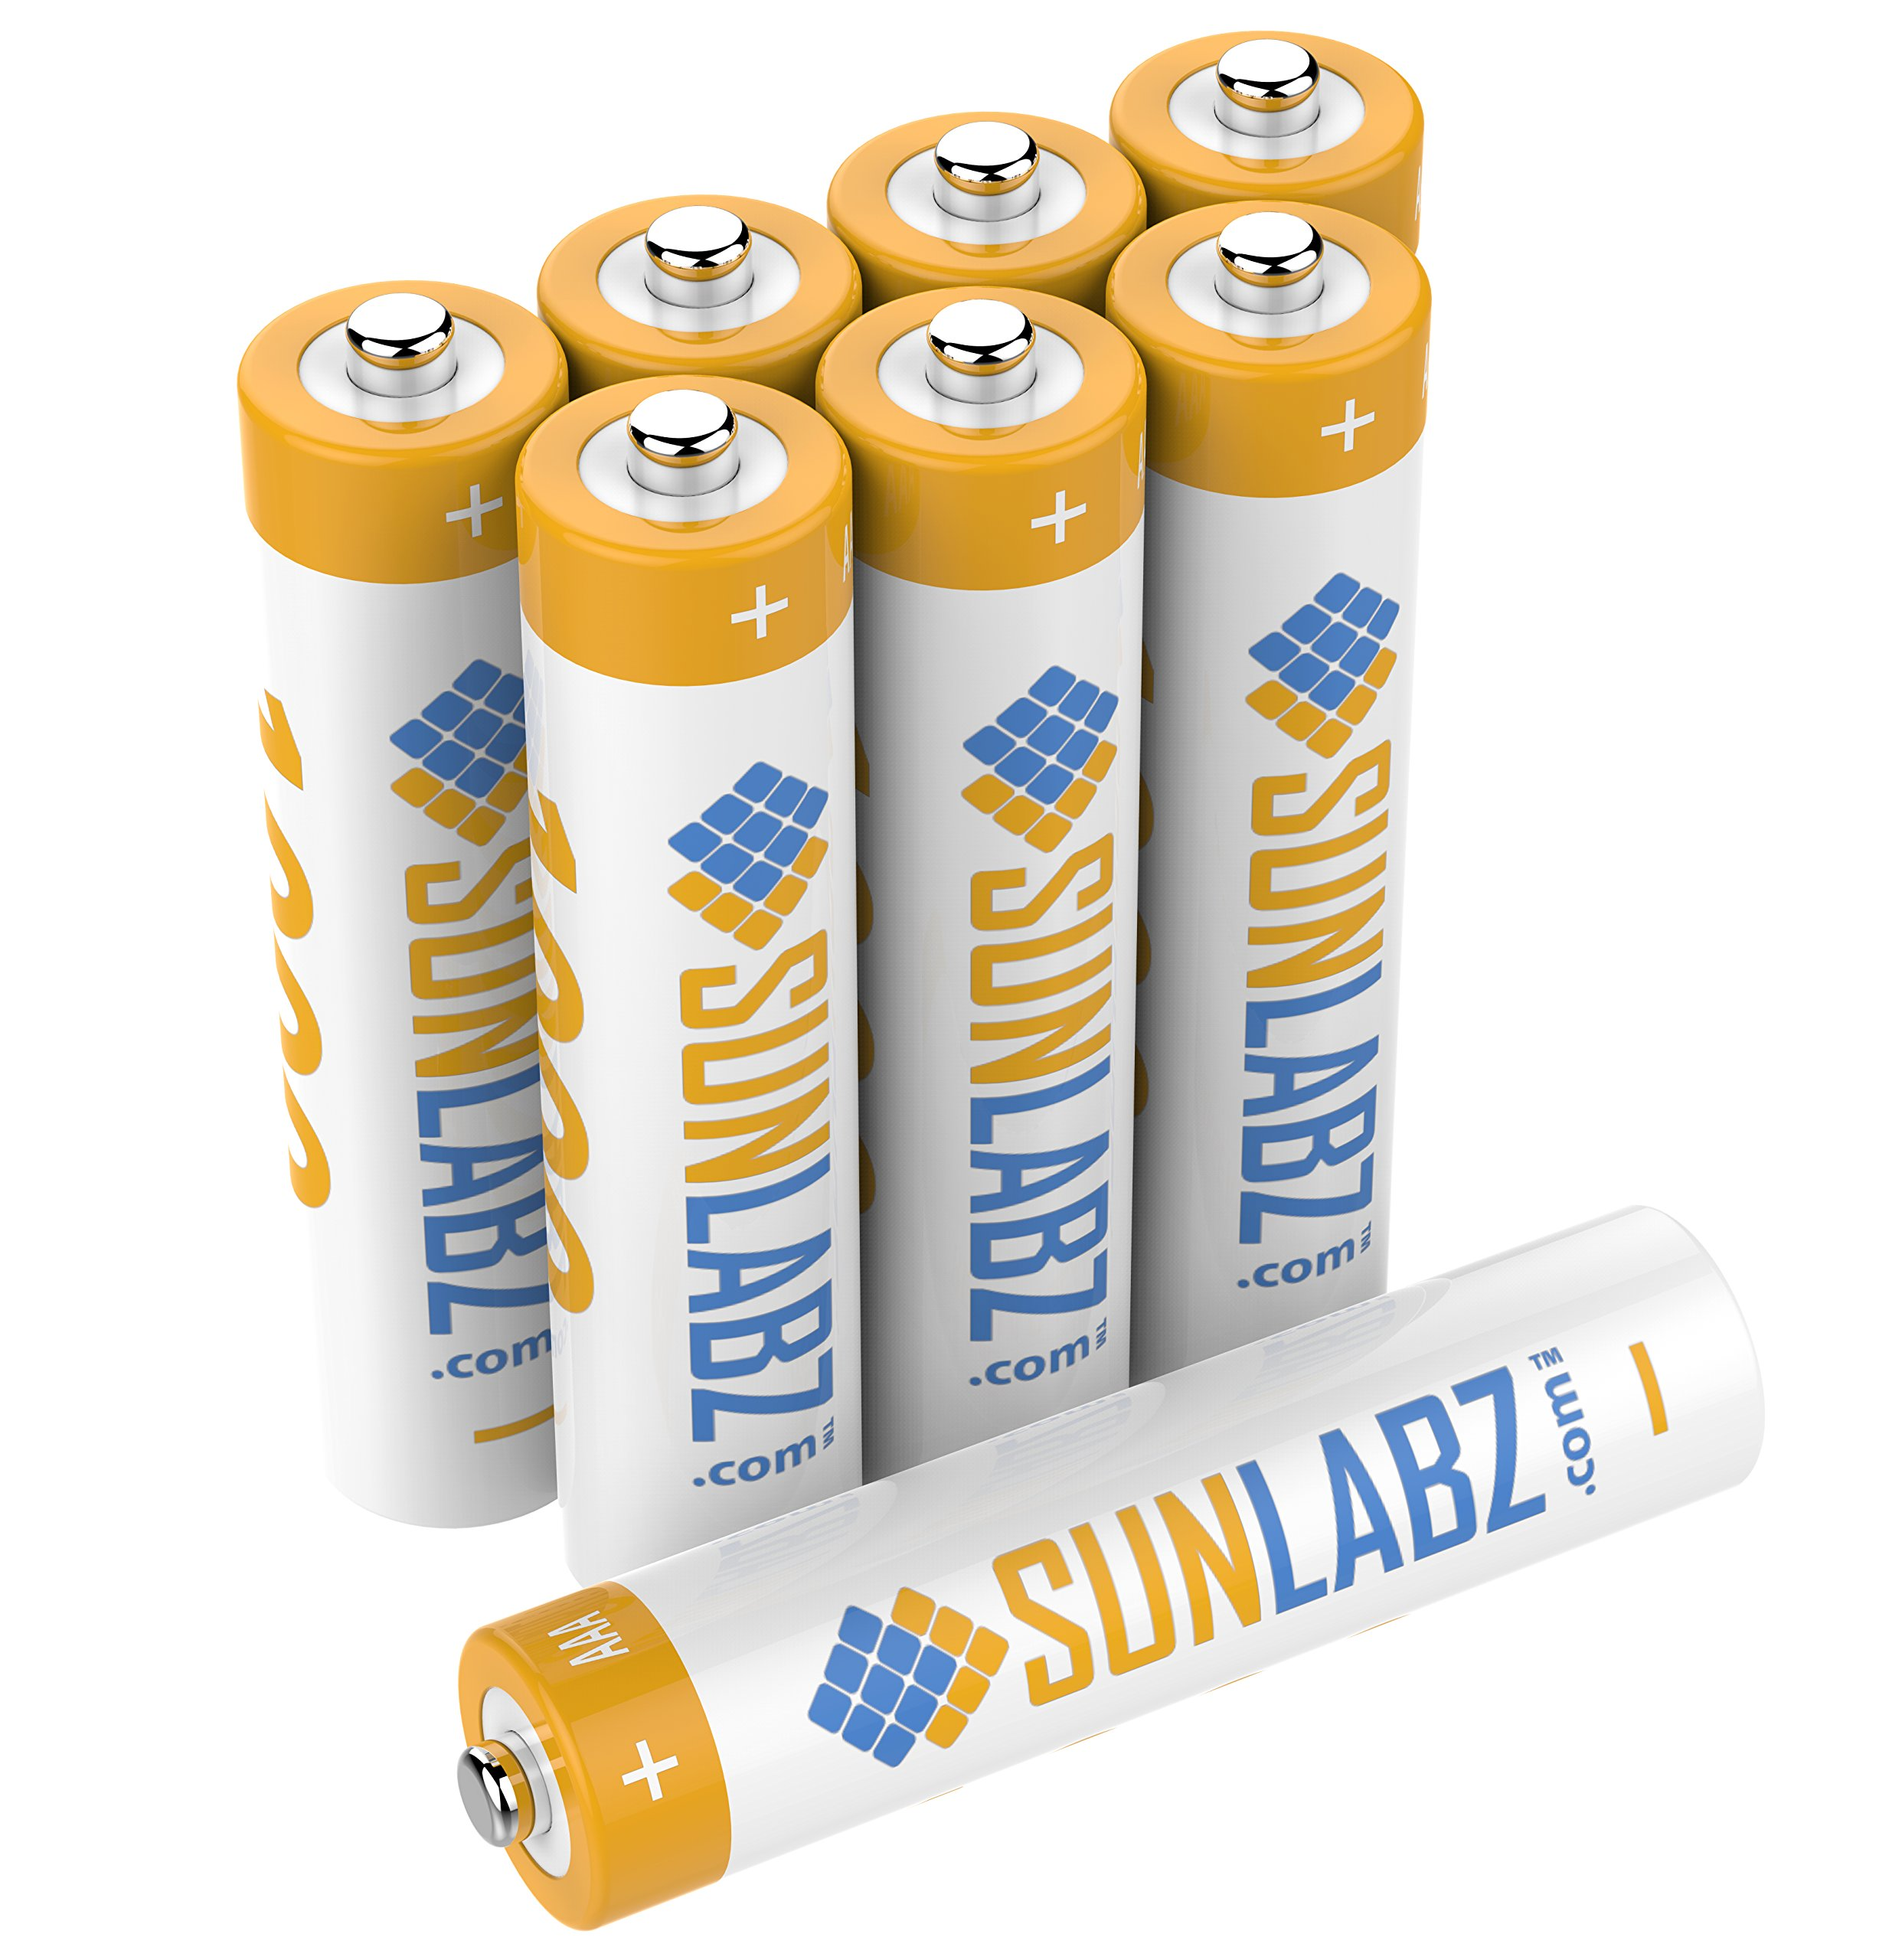 SunLabz AAA Rechargeable Batteries, Ultra-Efficient NiCD, 8 Pack